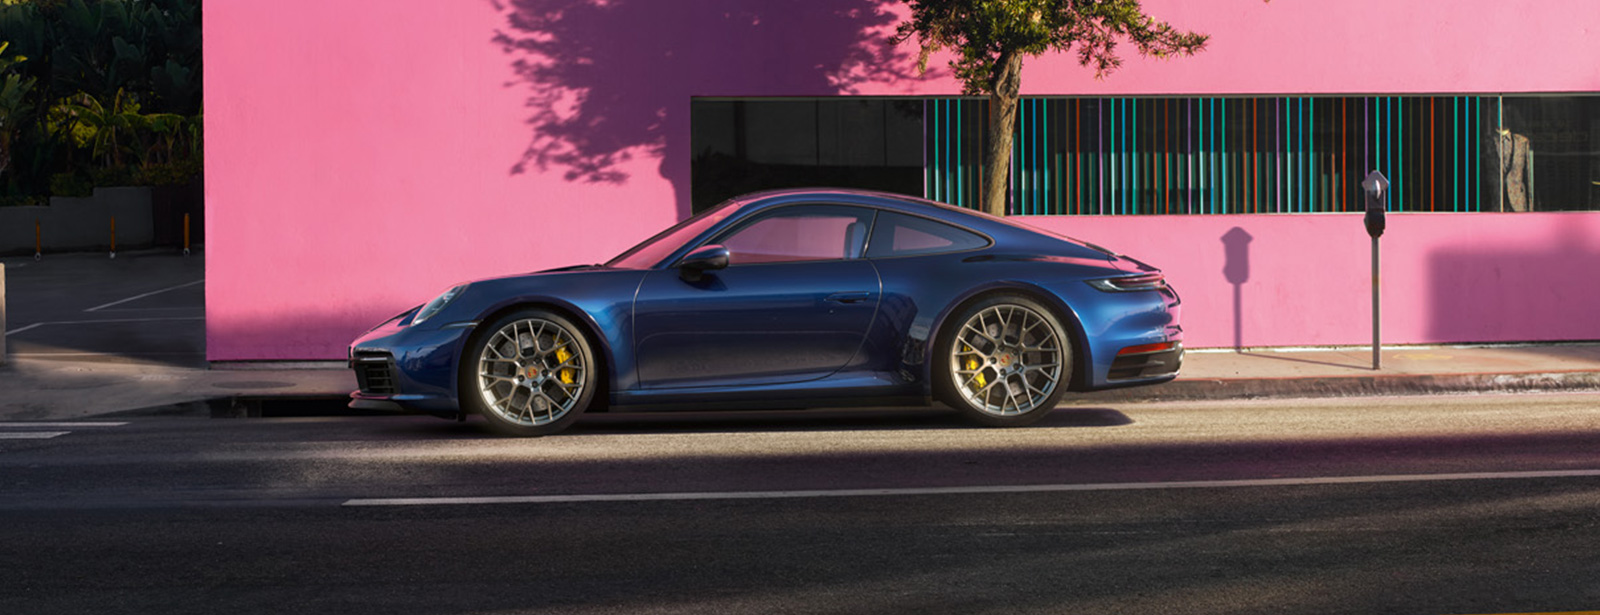 Porsche - The new 911 Debut Fair